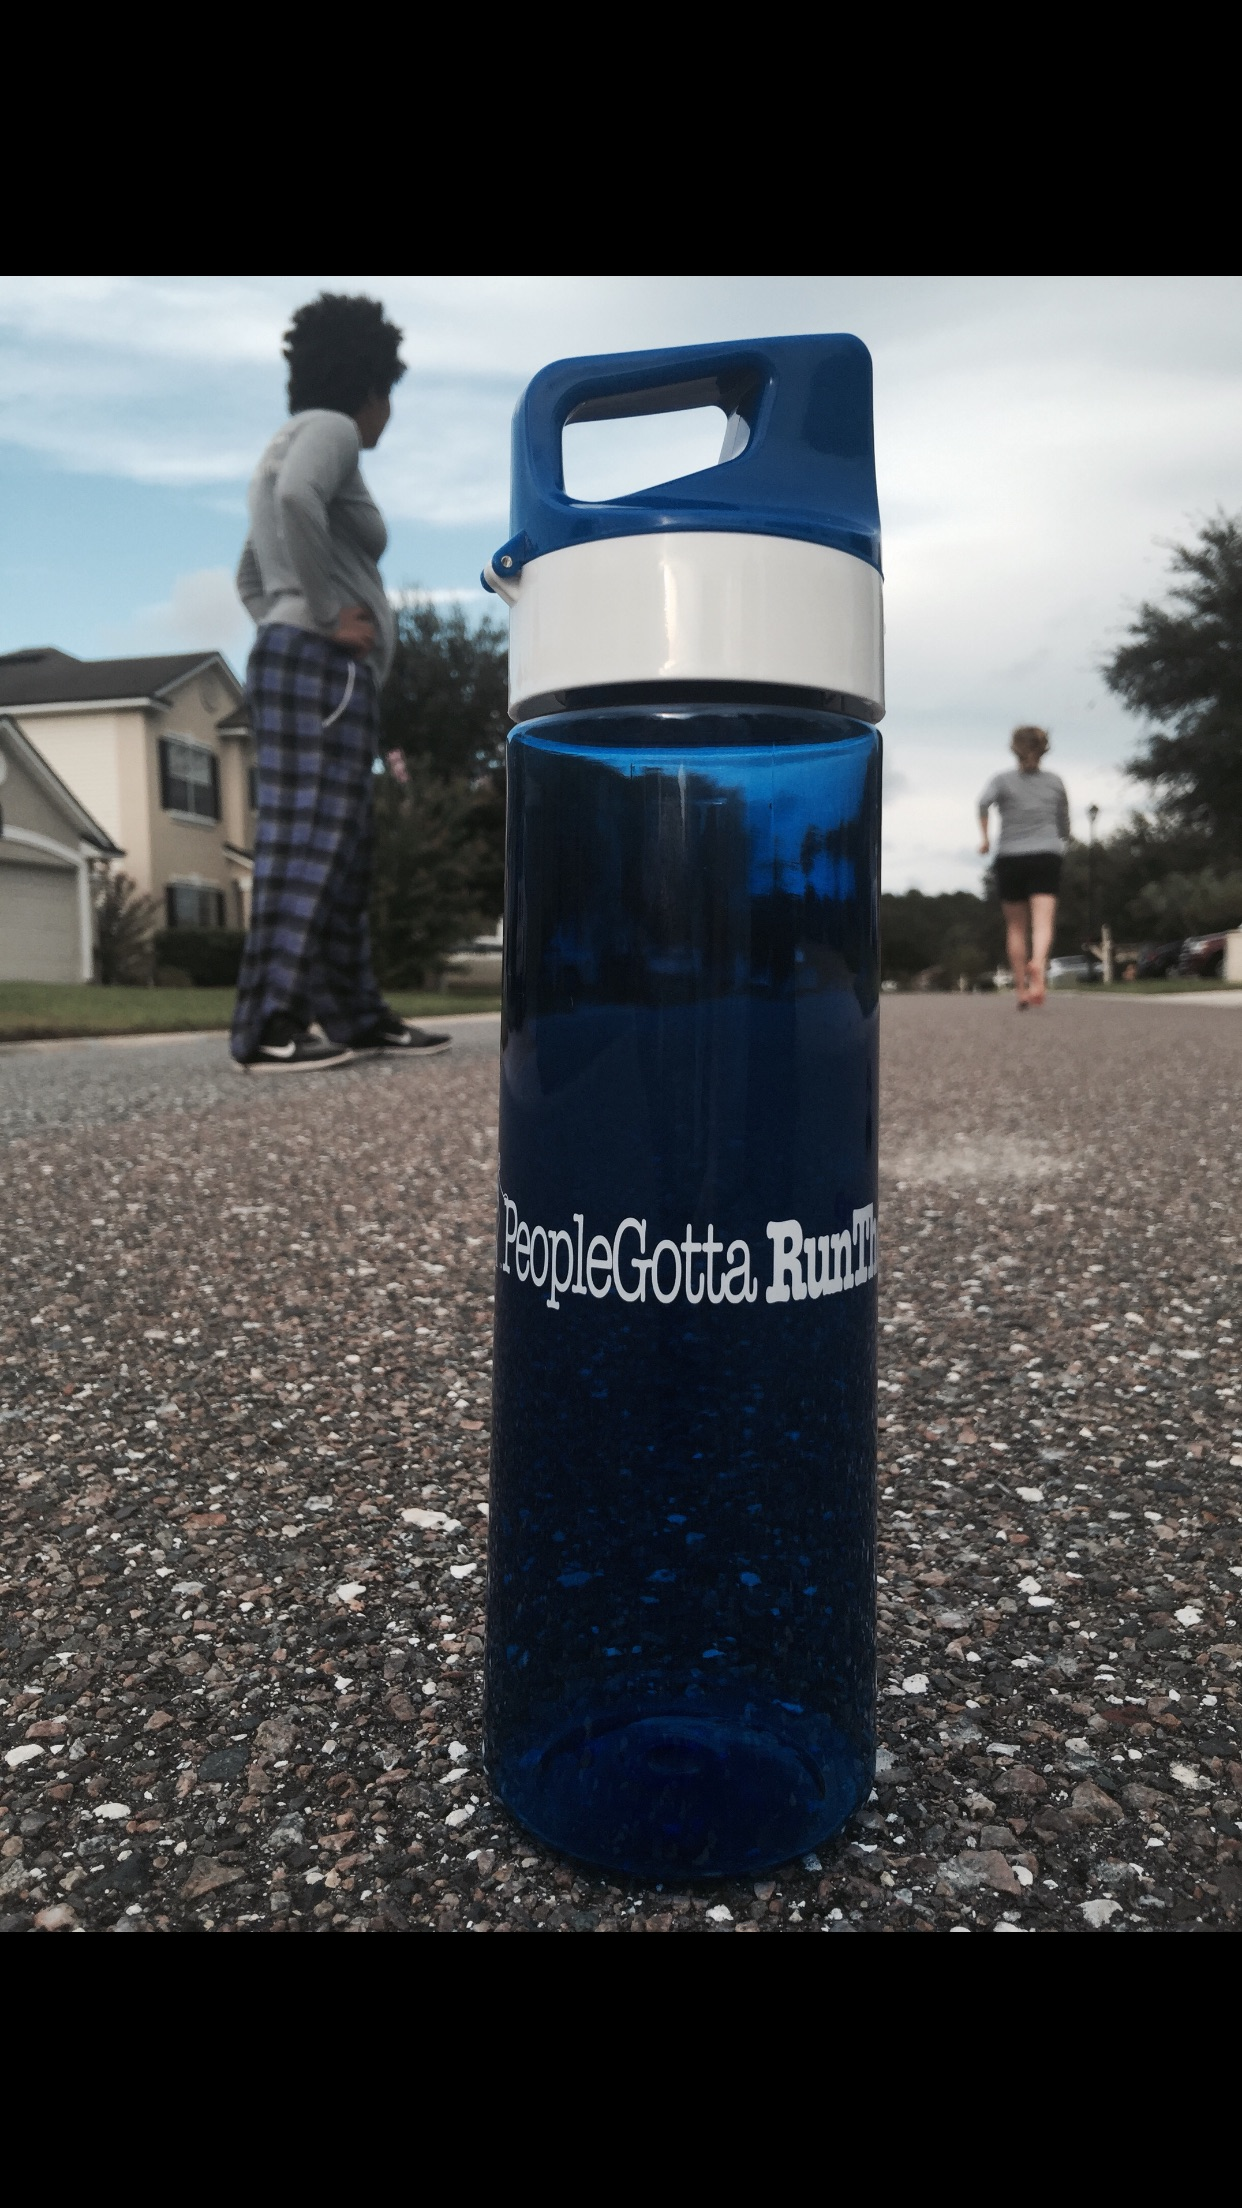 IS211Race To The Top in addition Today Gif Pictures Selection besides Super brawl 3 good vs evil also  furthermore Peoplegottaruntherace Sports Bottle. on amazon race